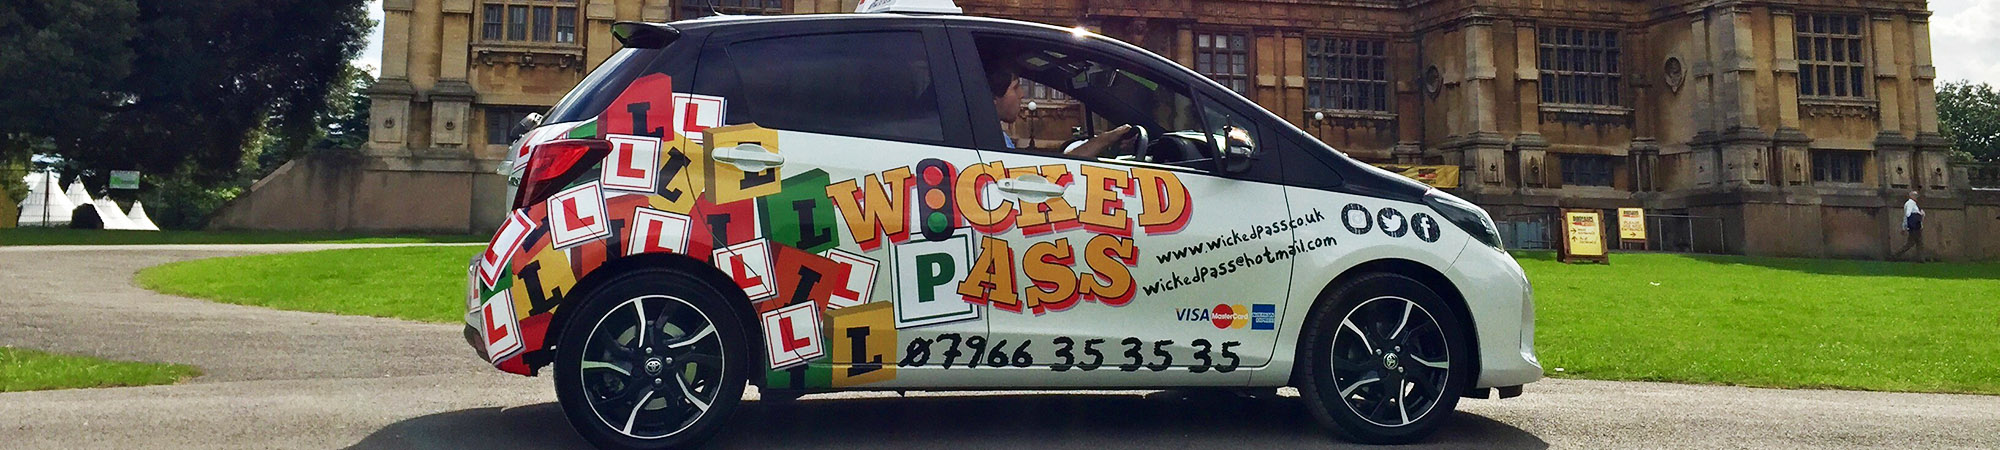 Contact Wicked Pass Driving School